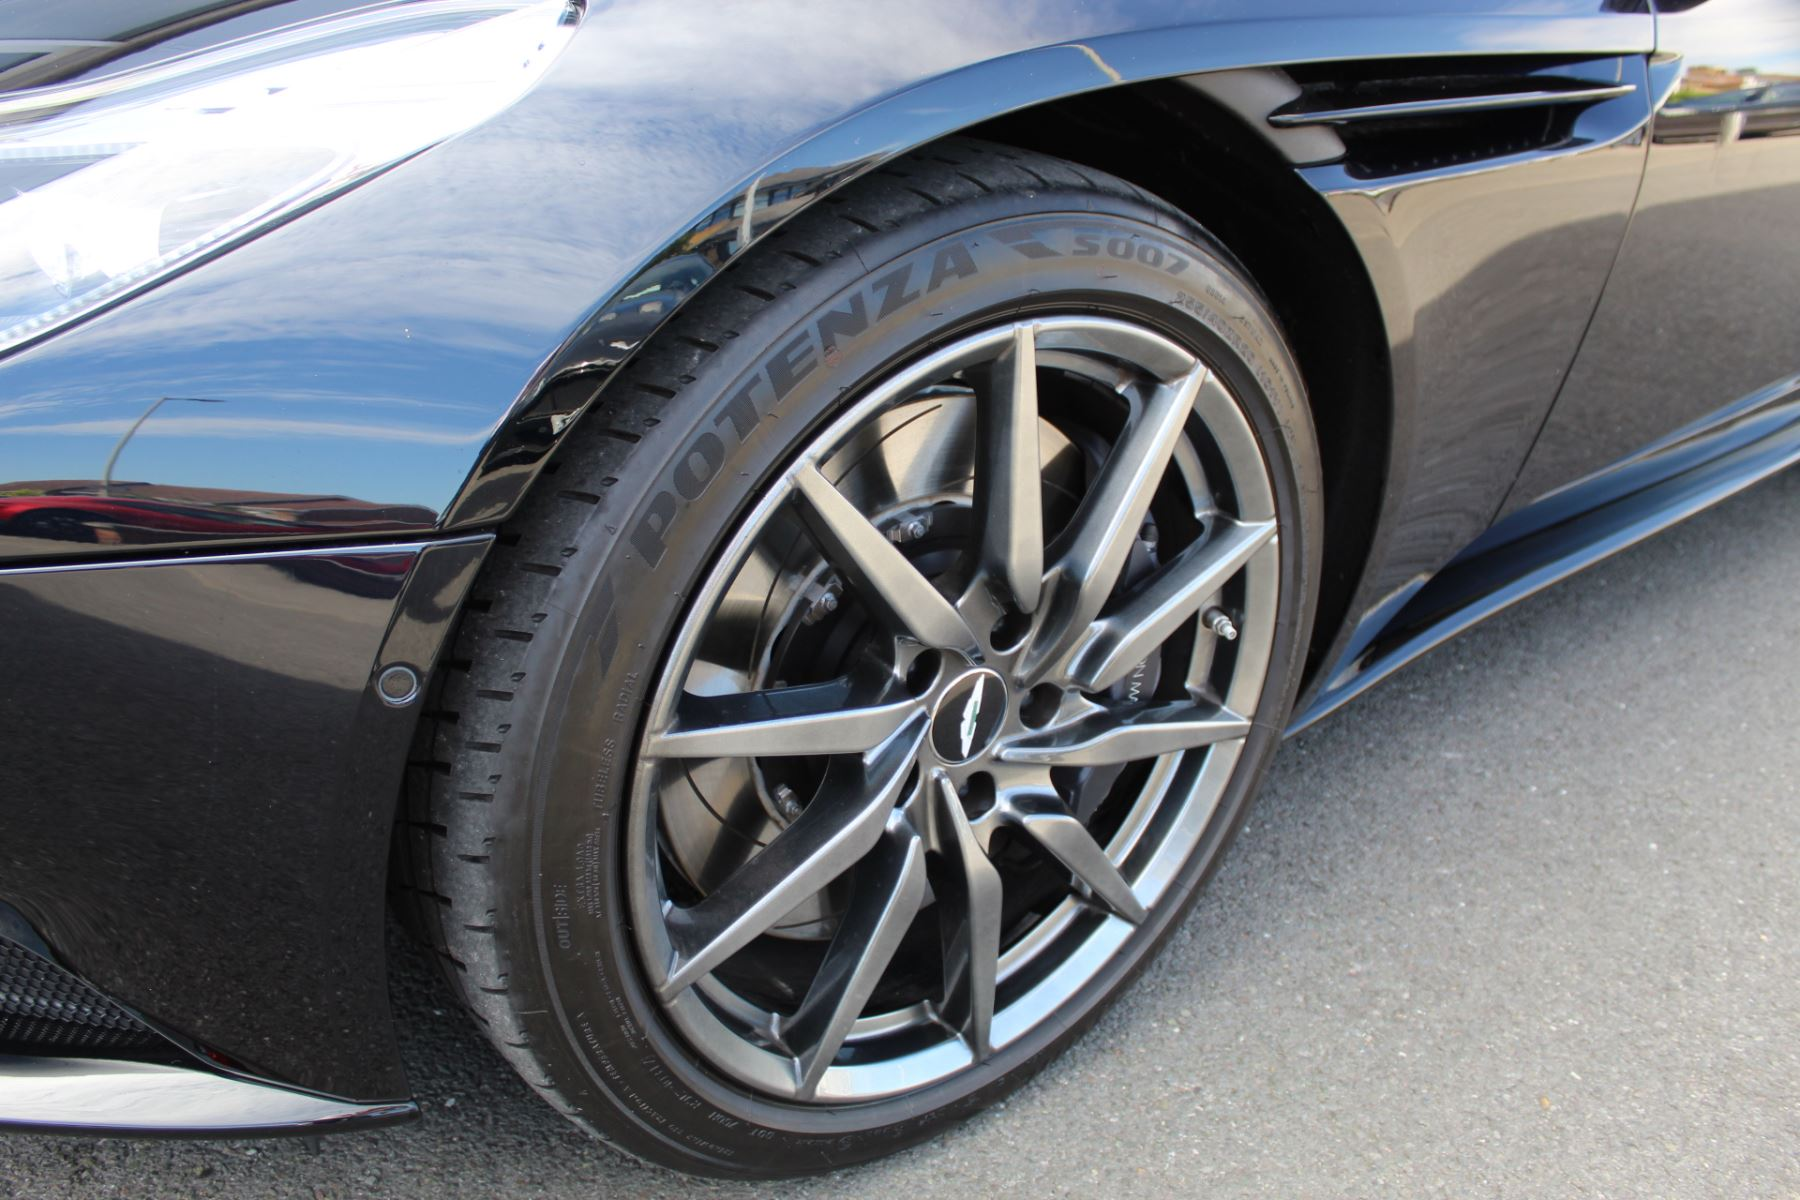 Aston Martin DB11 V12 2dr Touchtronic image 27